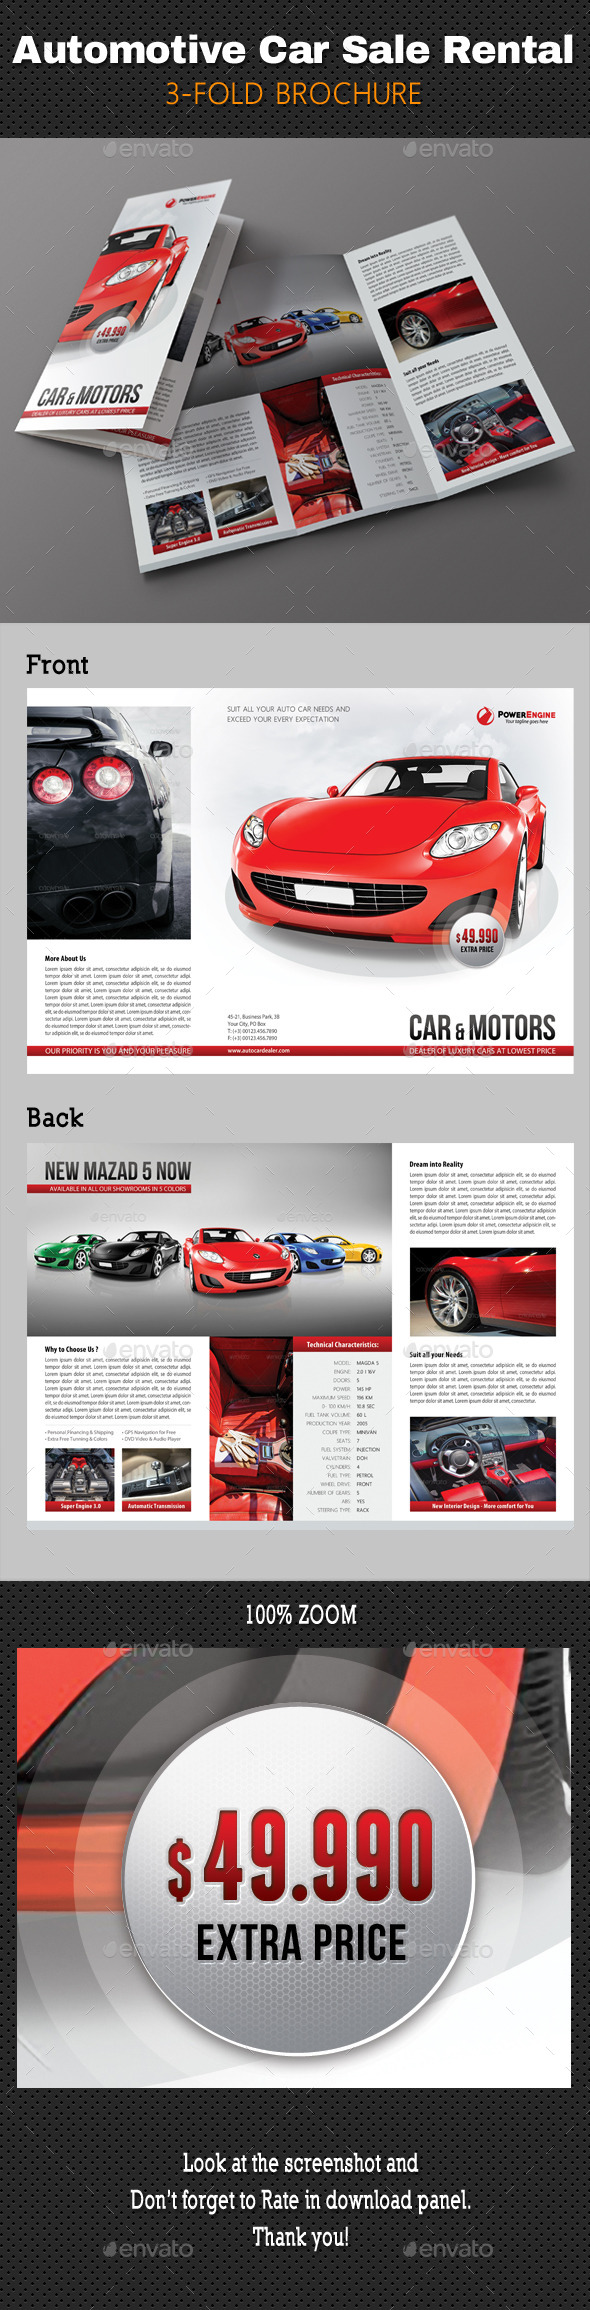 GraphicRiver Automotive Car Sale Rental 3-Fold Brochure 01 10949064